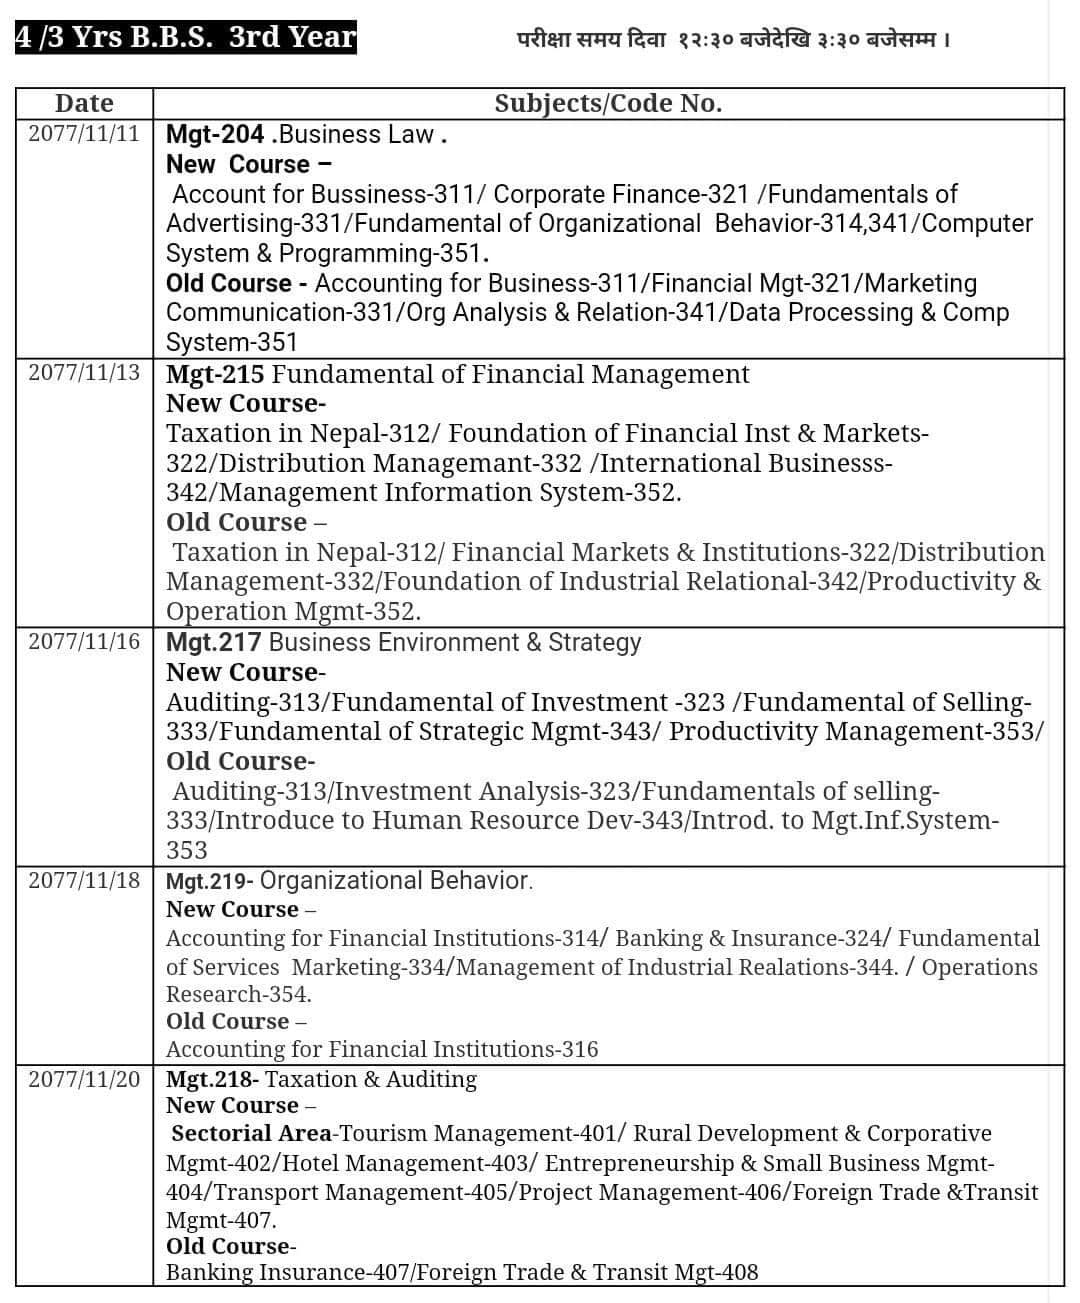 BBS 4/3rd Year Exam Routine Published